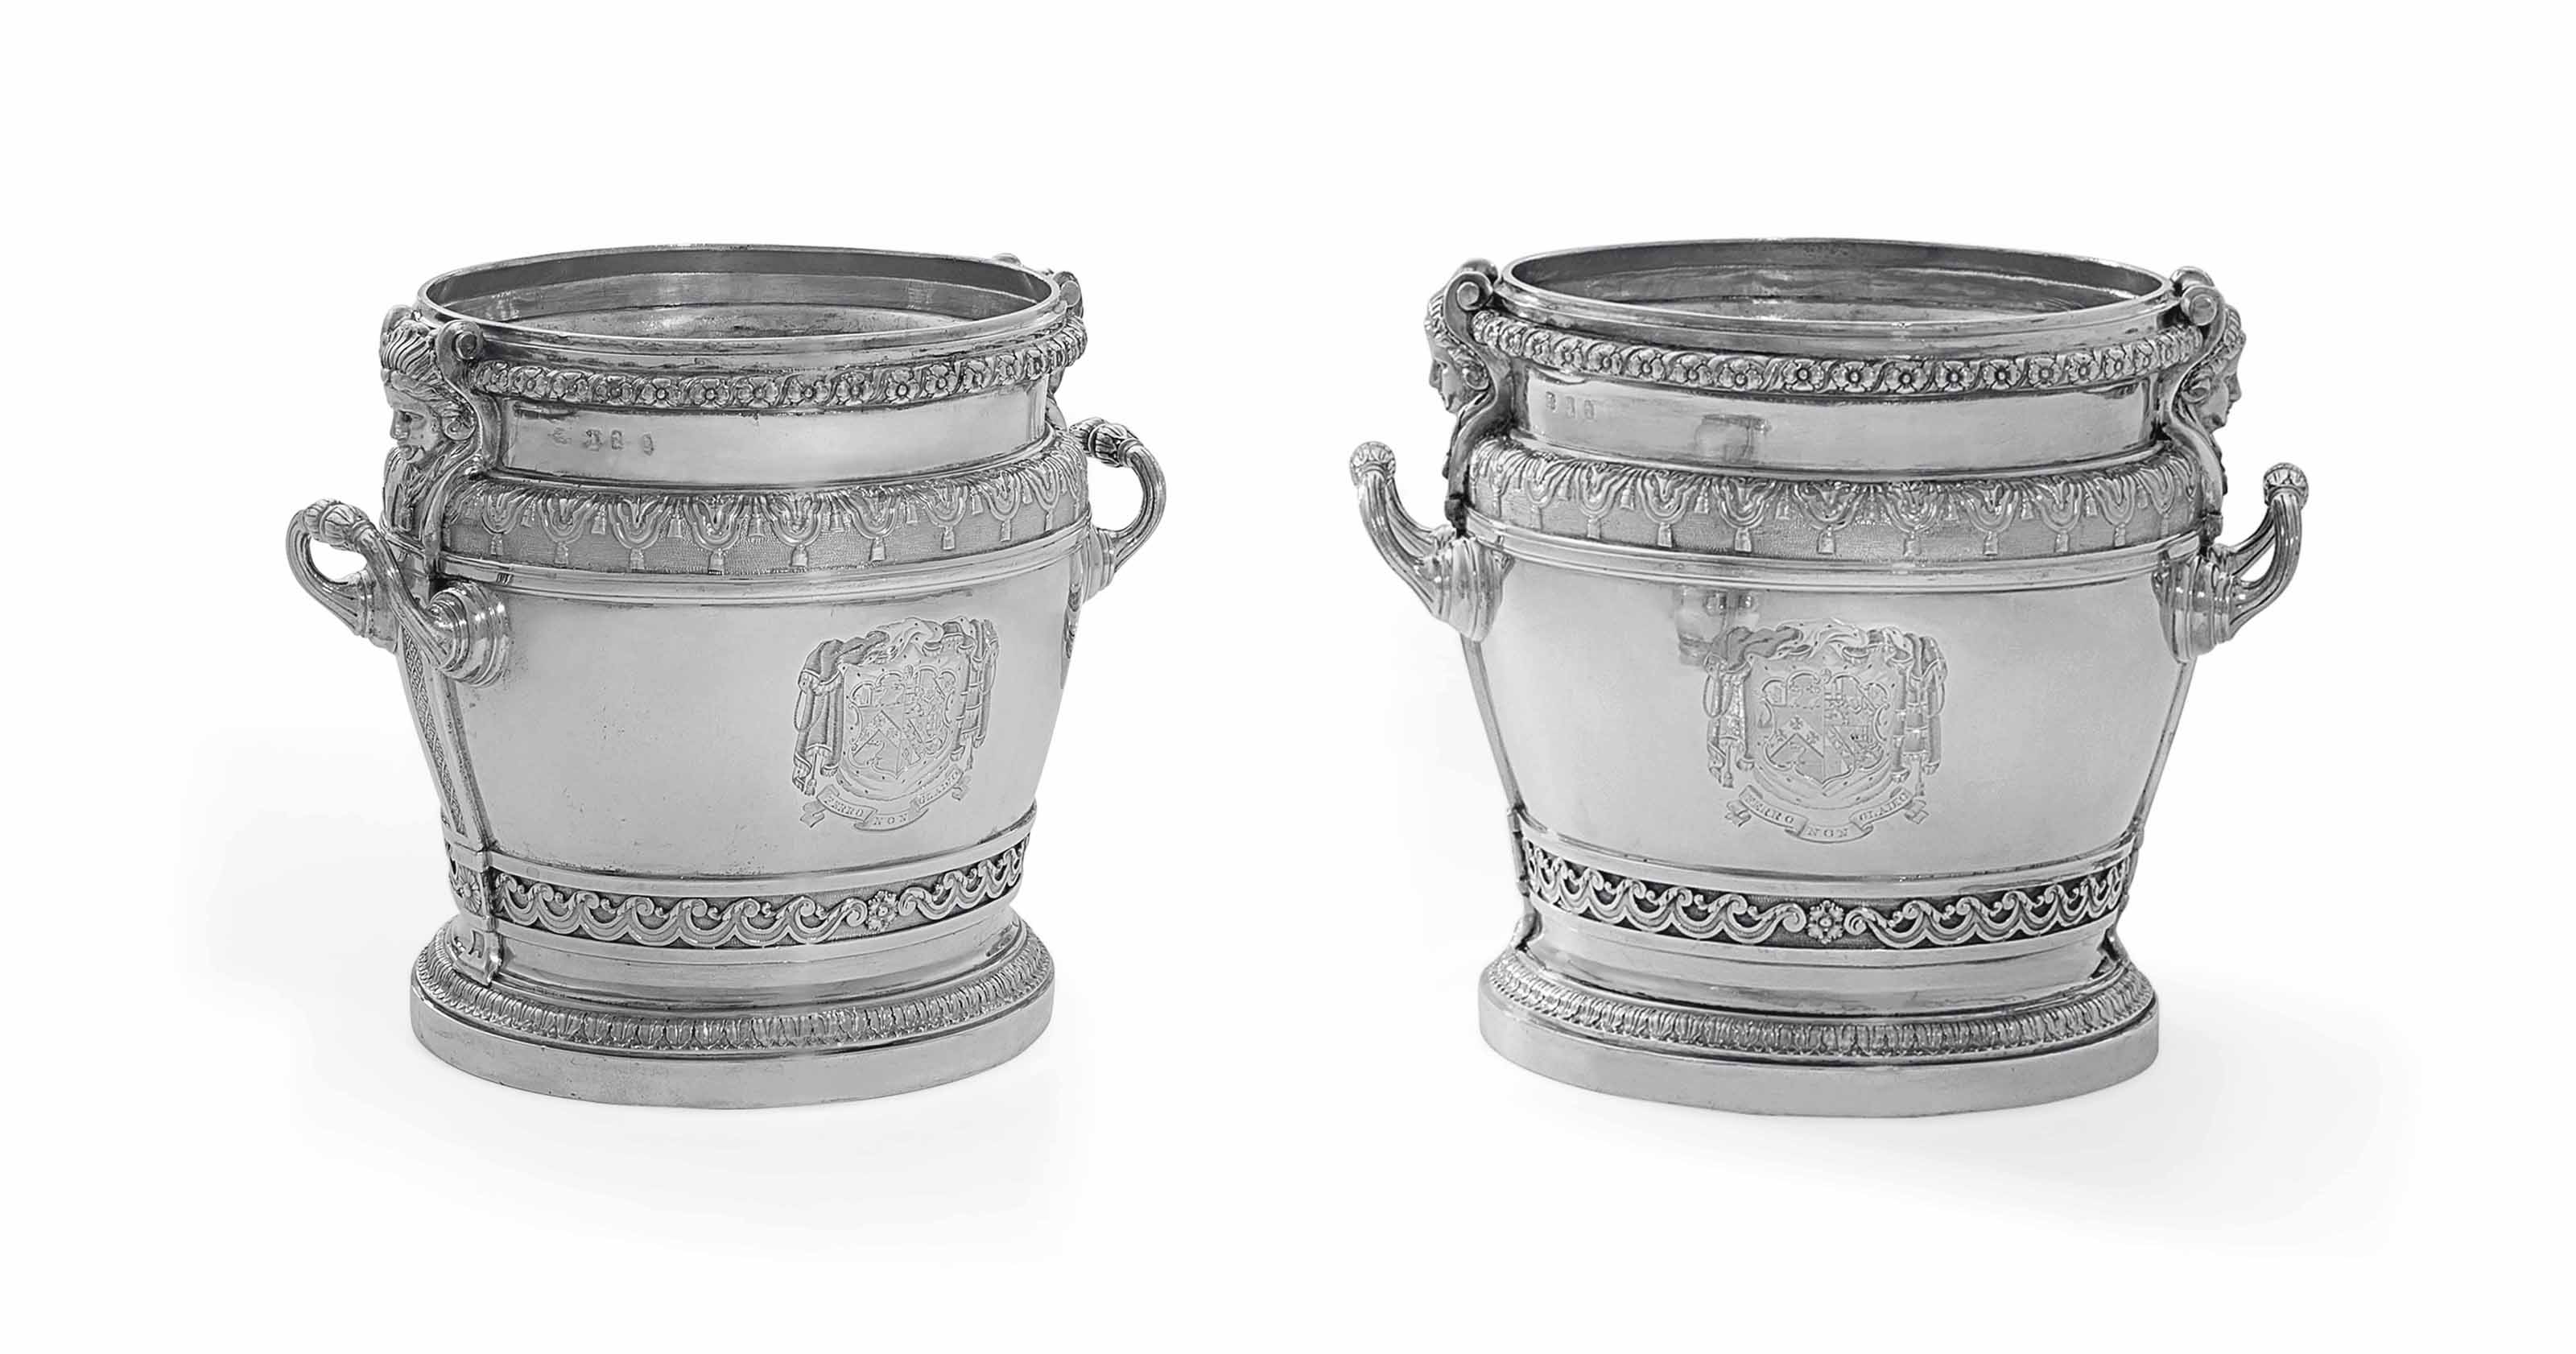 A PAIR OF WILLIAM III SILVER WINE-COOLERS